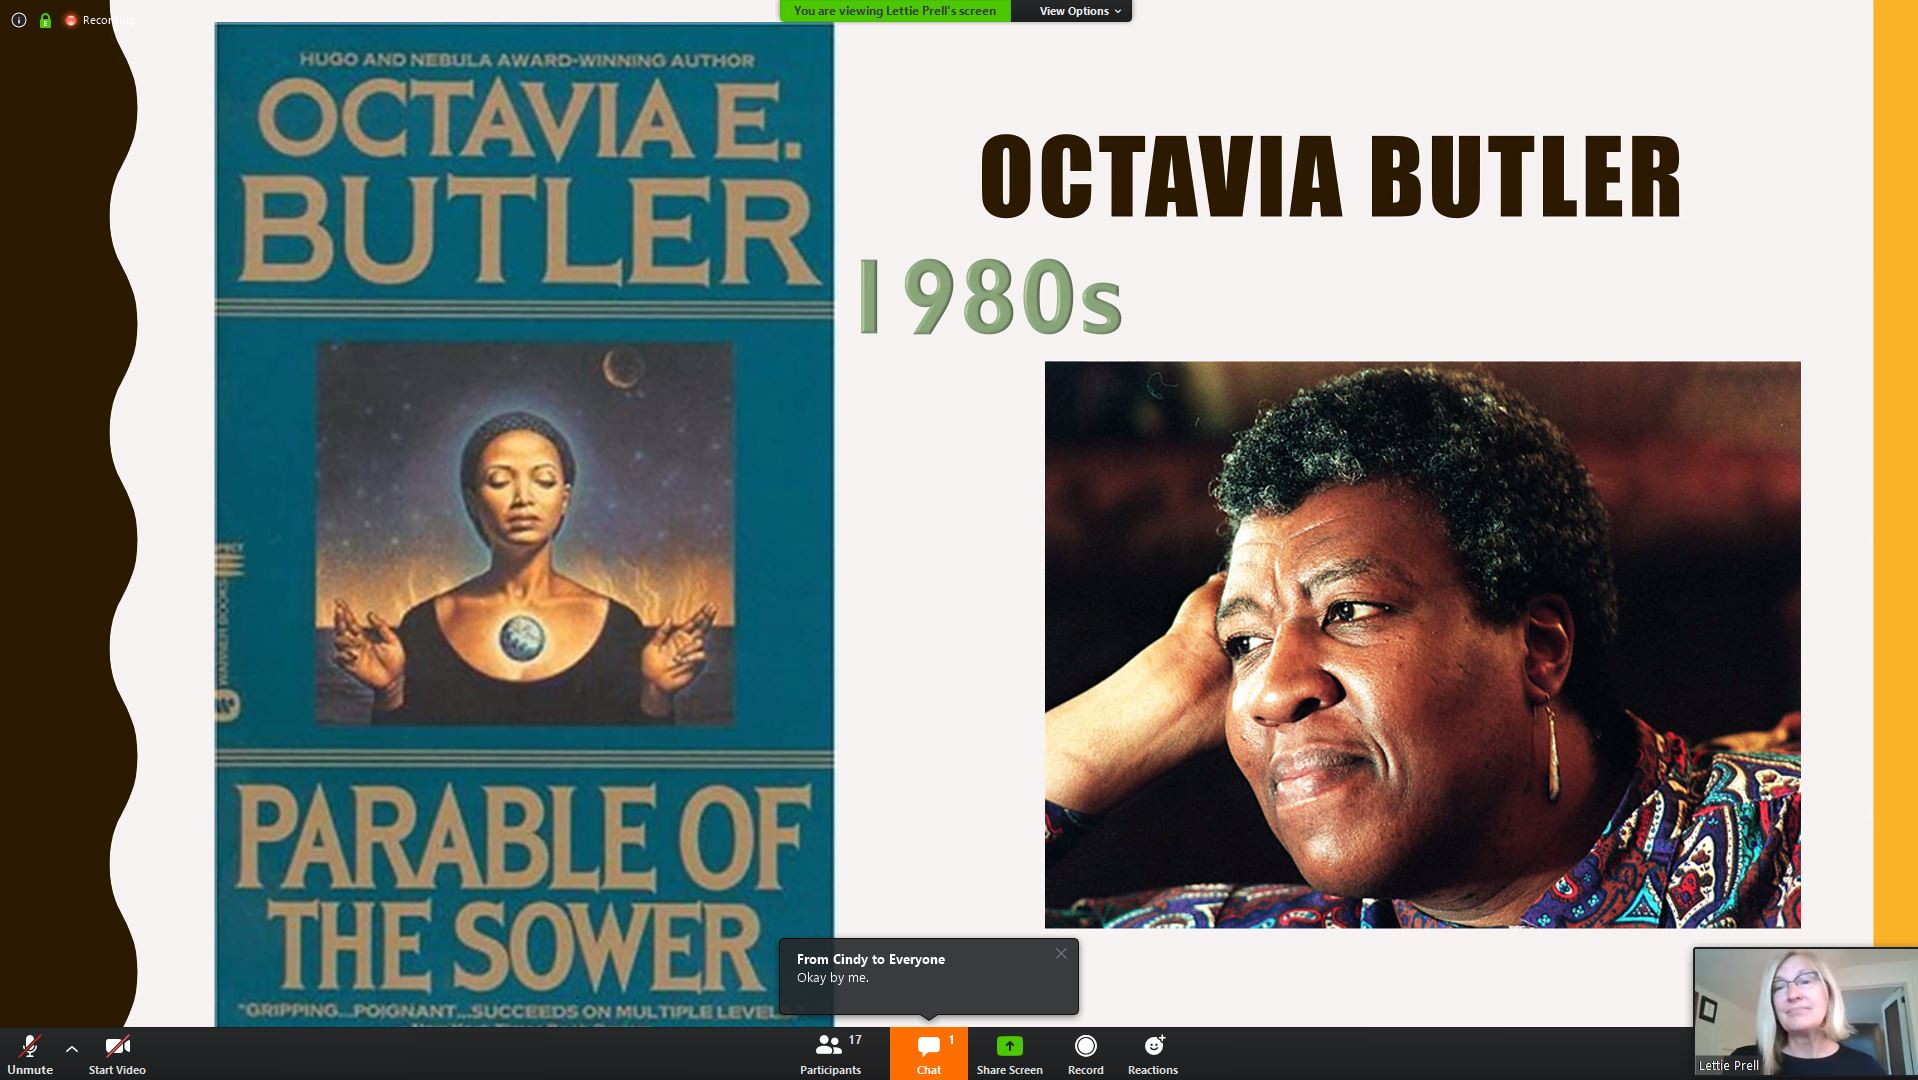 Slide from the presentation shows the cover of 'Parable of the sower' and to the right of it there is a picture of Octavia Butler. Bottom right corner shows a webcam view of the presenter.